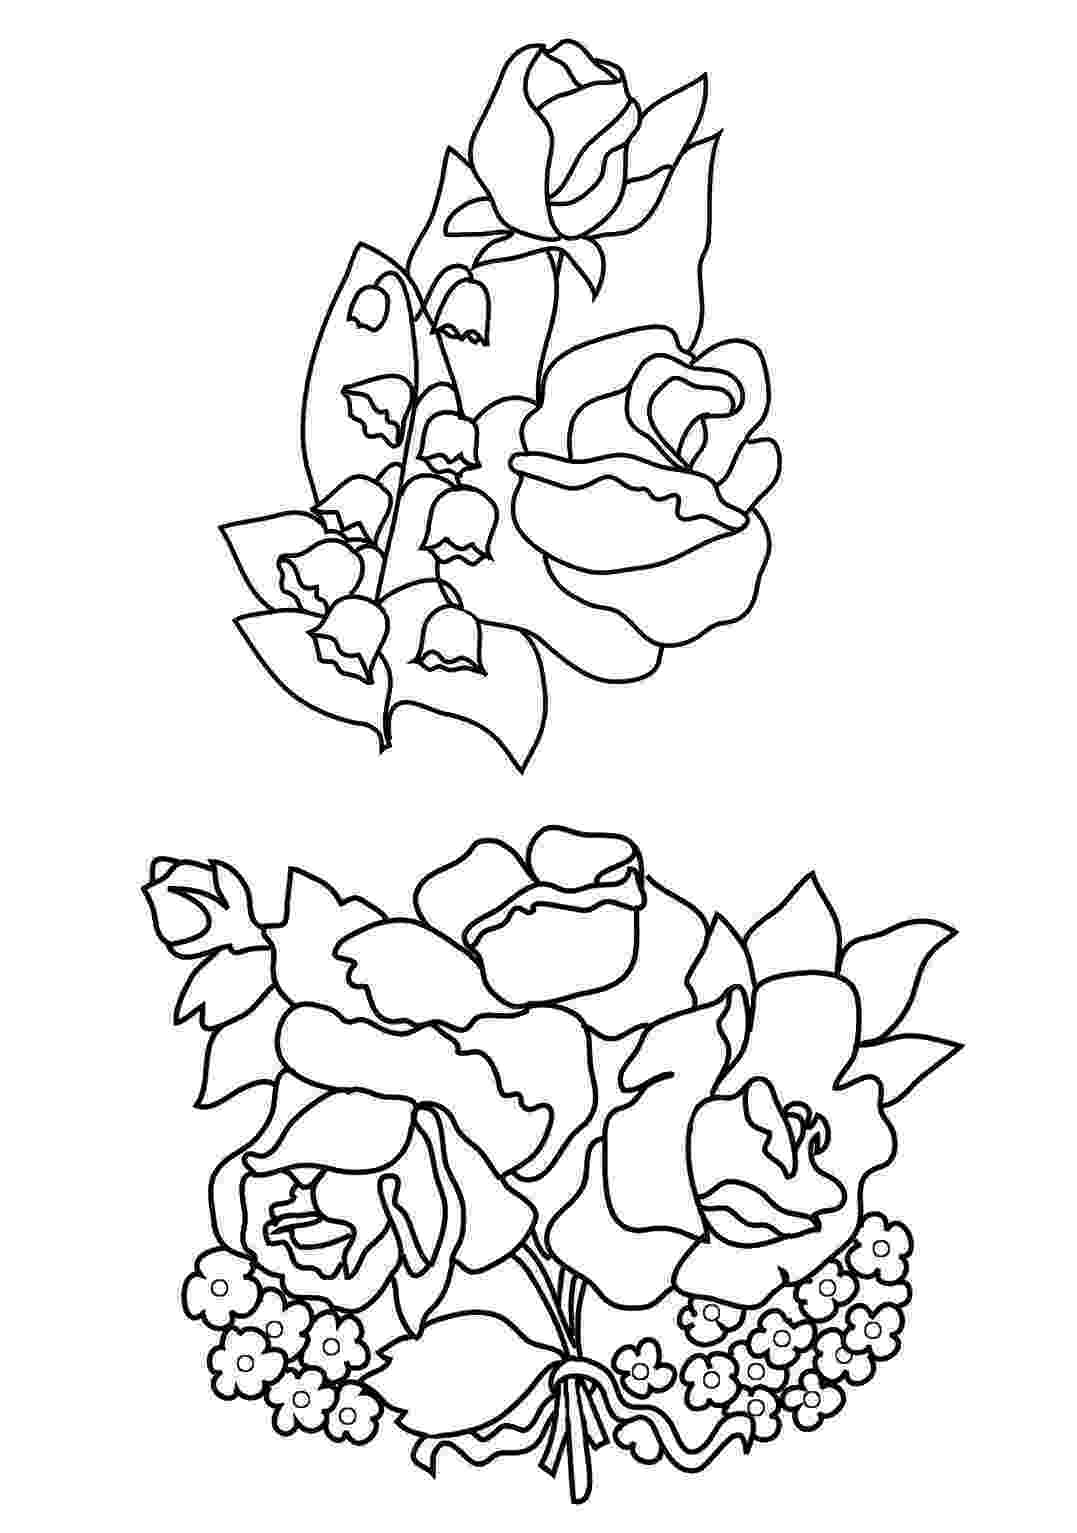 flowers colouring flower garden coloring pages to download and print for free flowers colouring